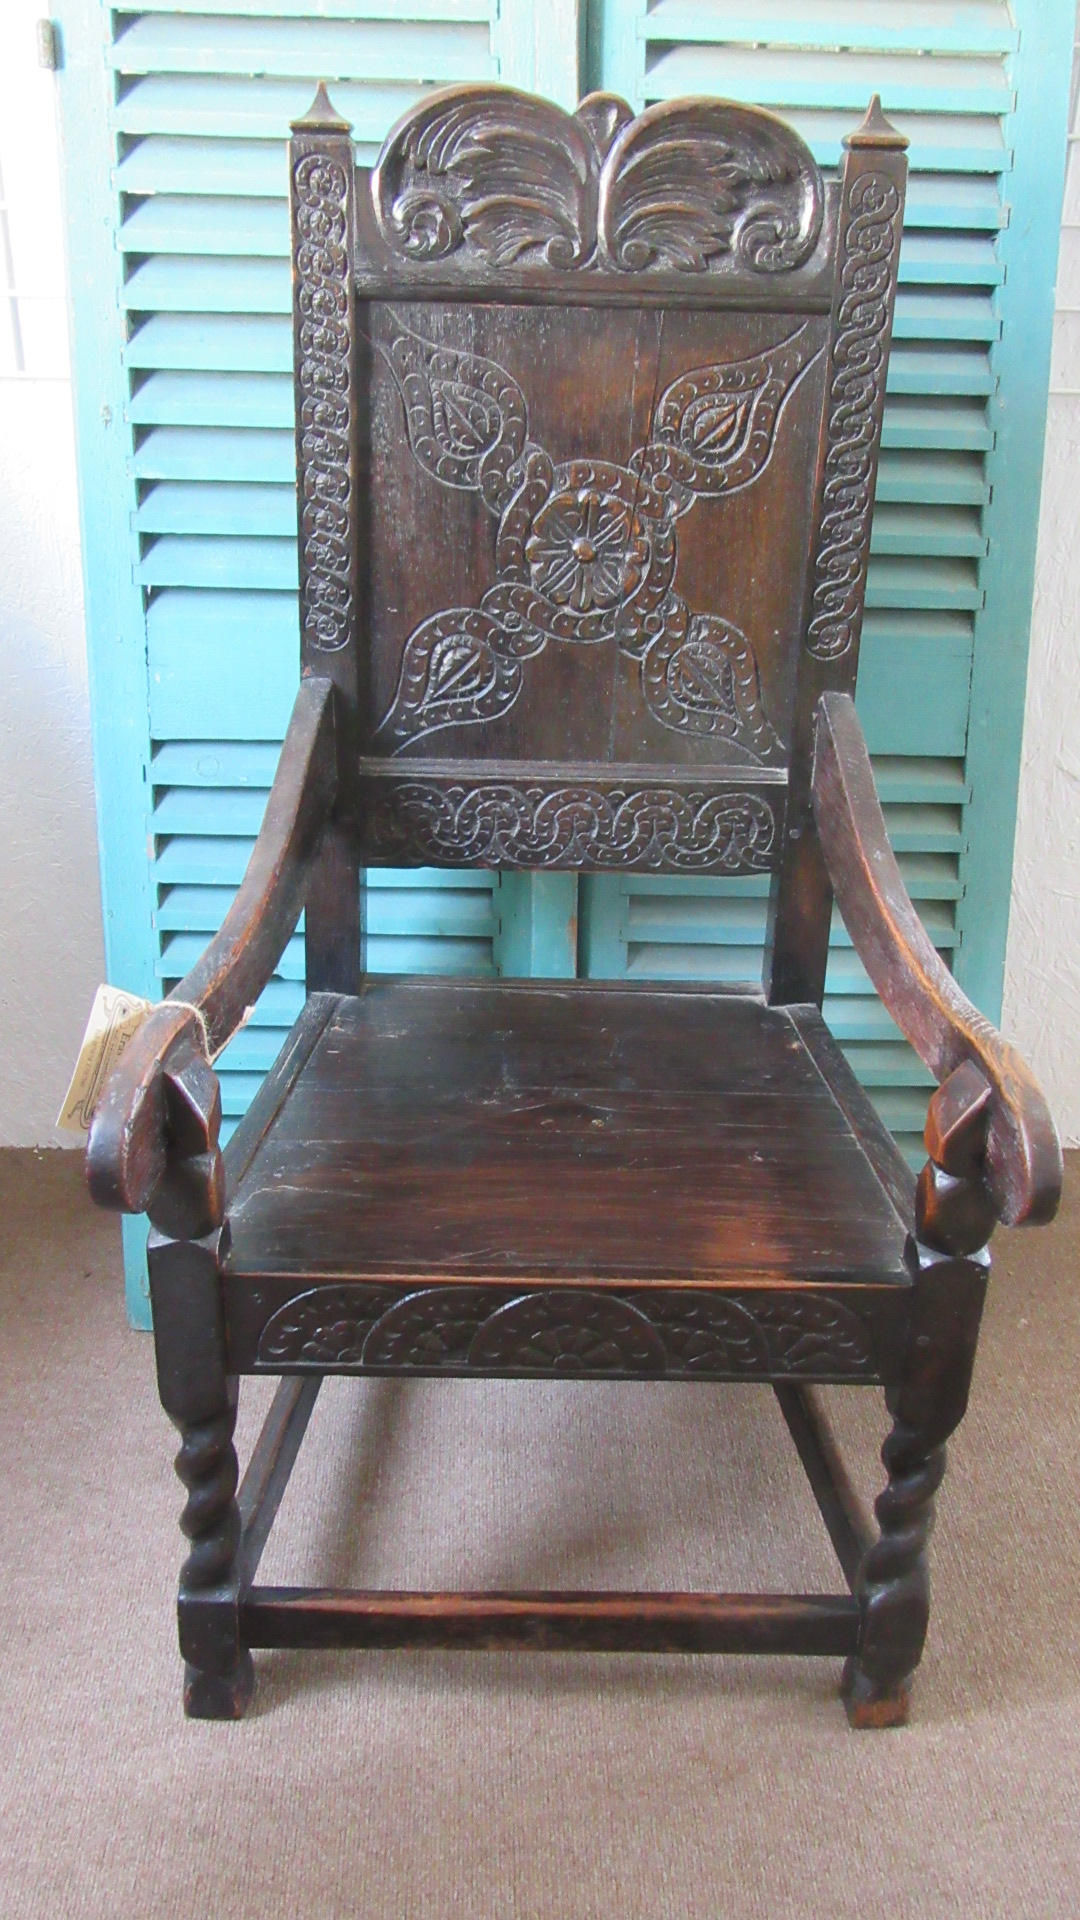 ANTIQUE OAK WAINSCOTT ARMCHAIR